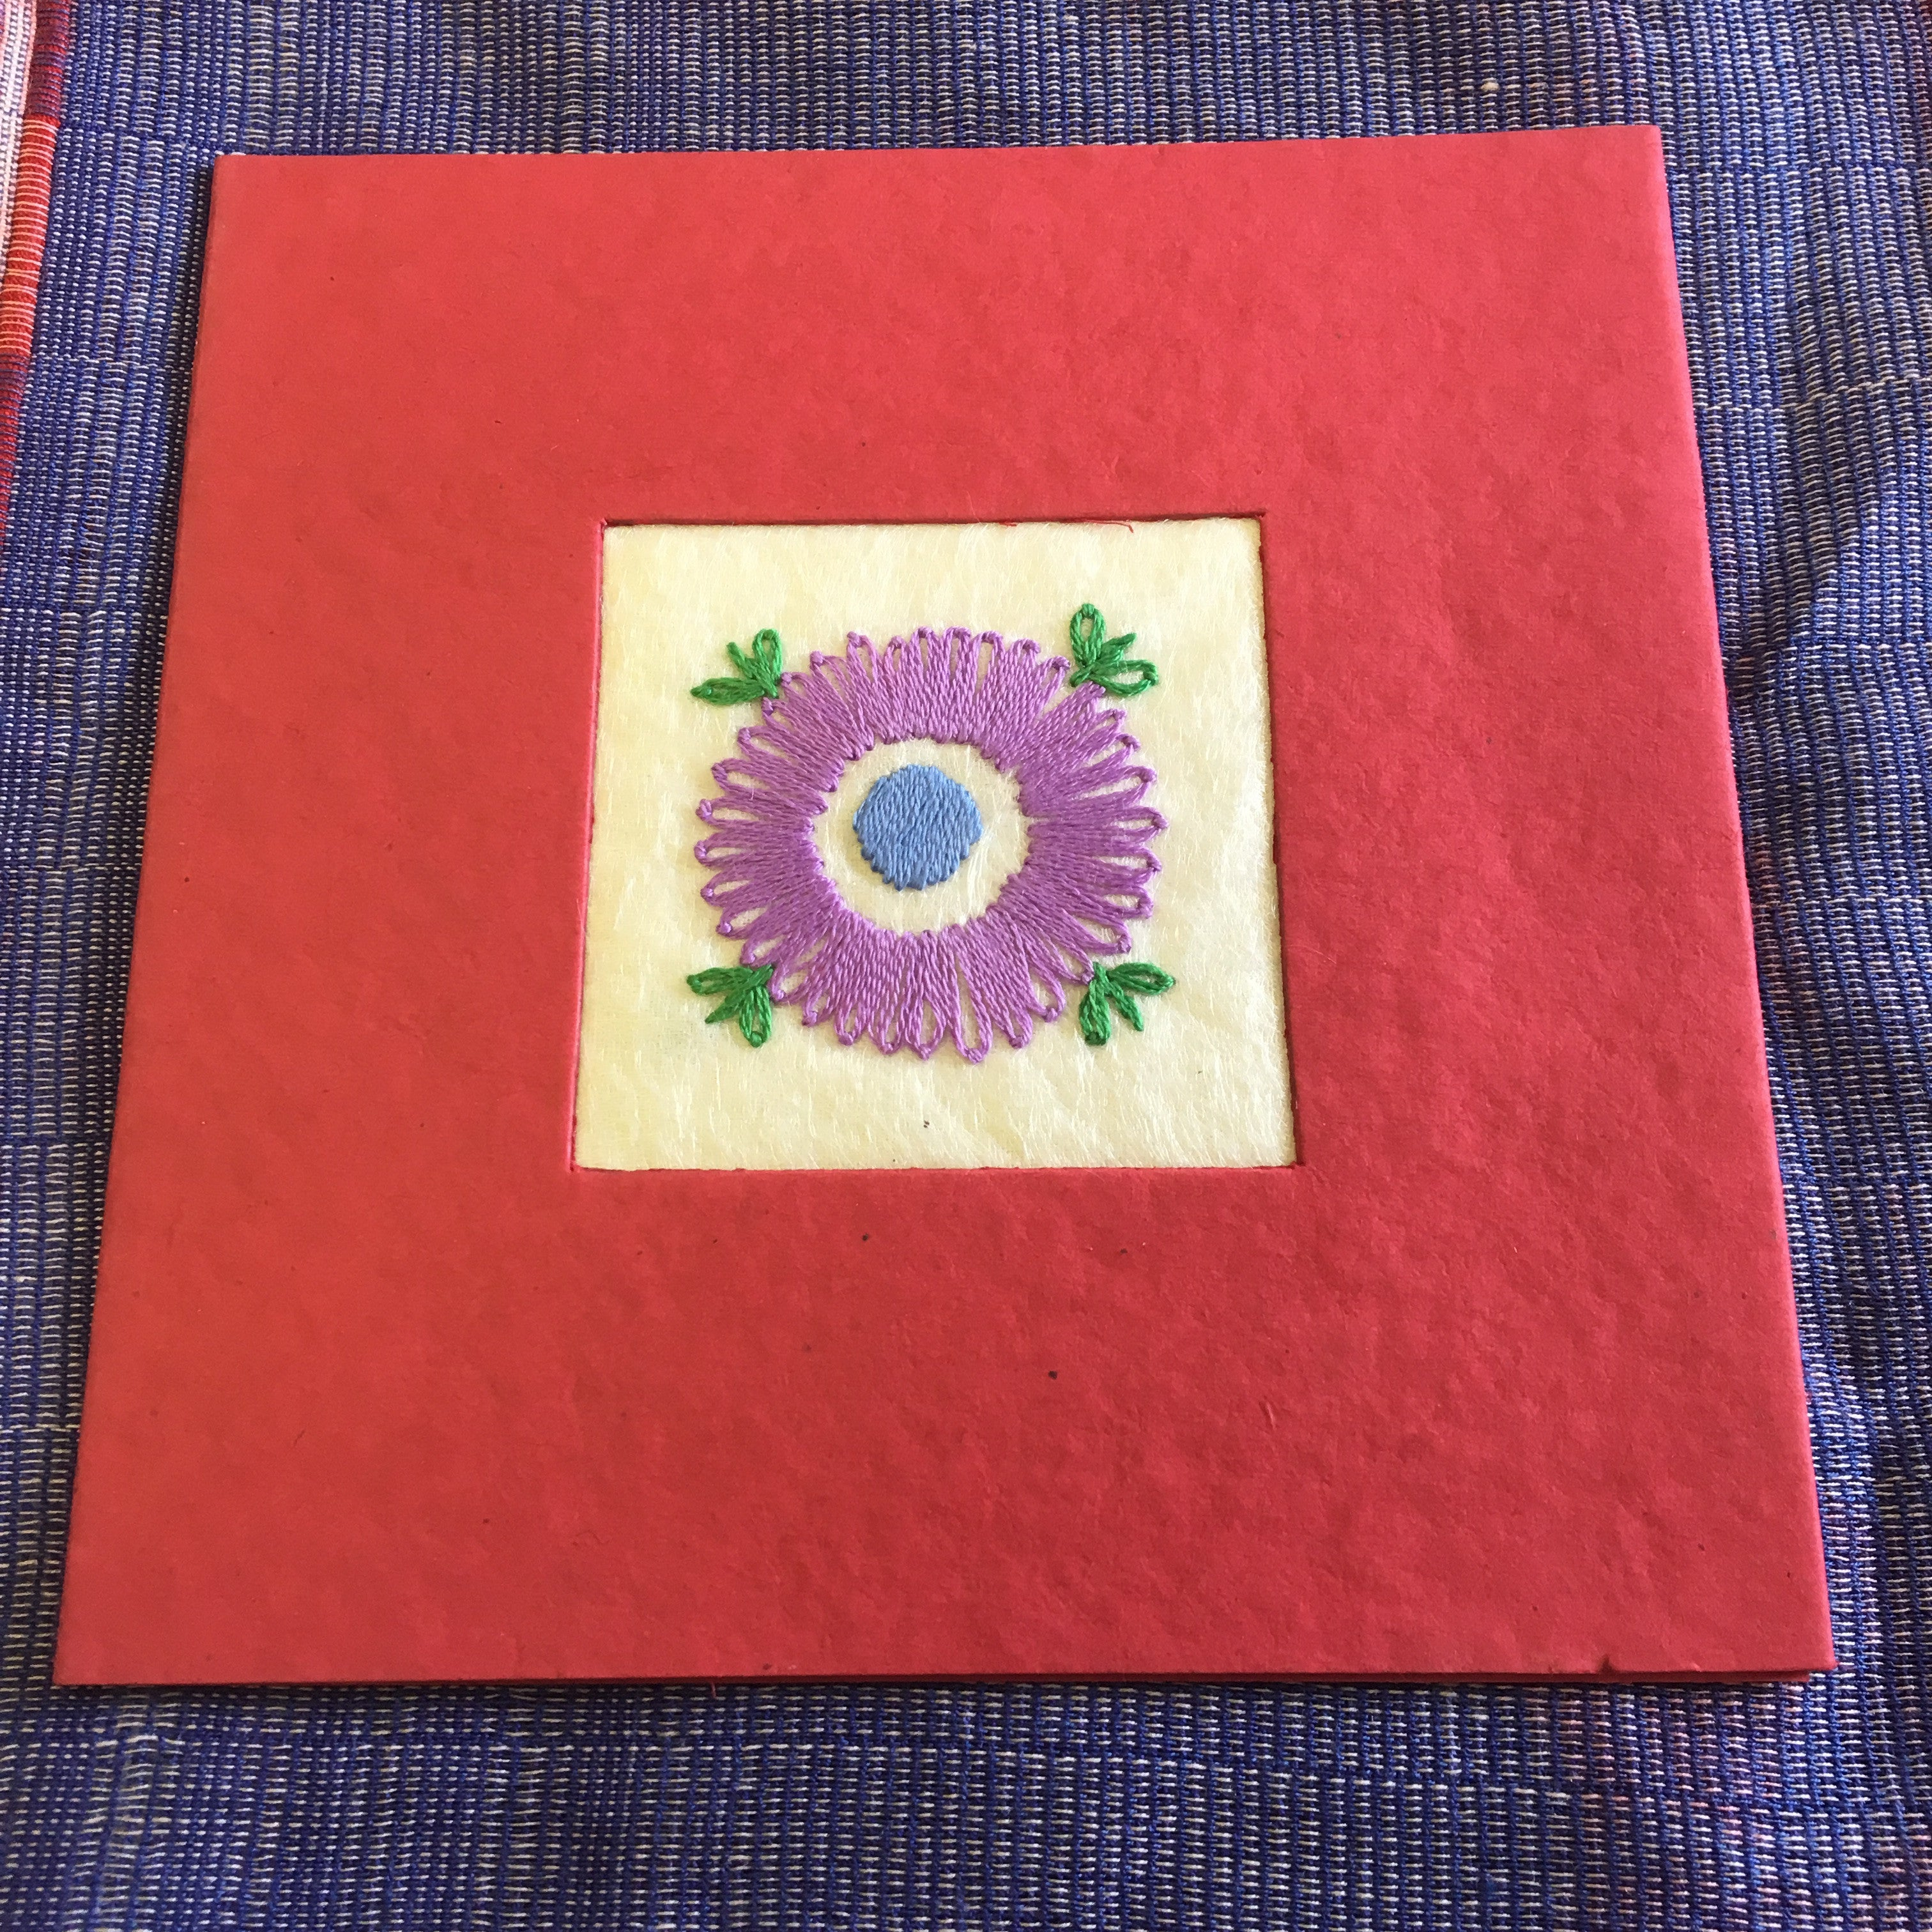 Embroidered greetings cards the sreepur village sreepur village charity embroidered greetings cards kristyandbryce Choice Image